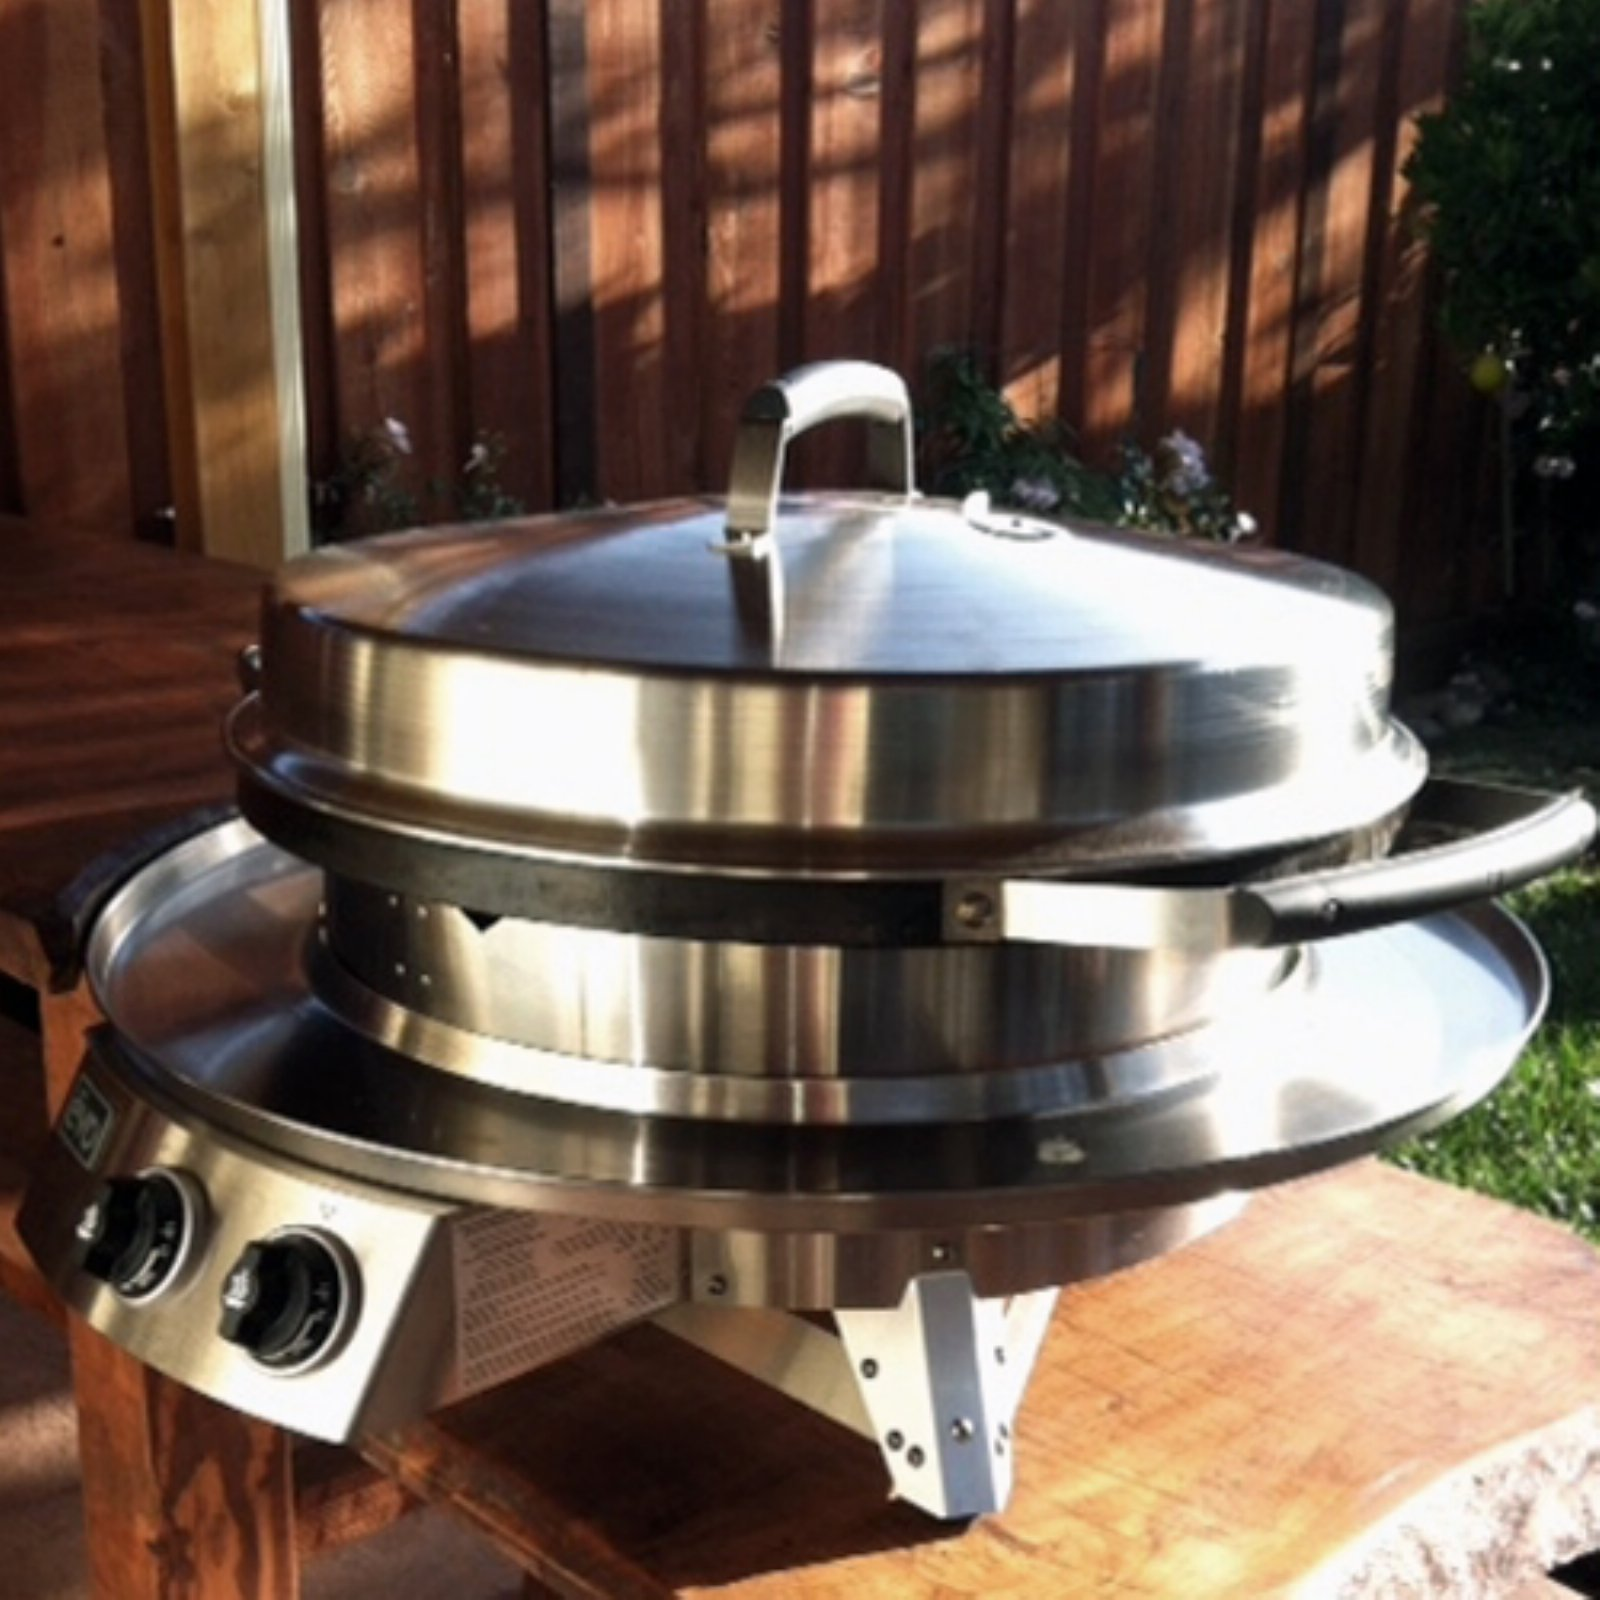 Evo Professional Circular Flattop Tabletop Gas Grill with Optional Ceramic Coating Upgrade